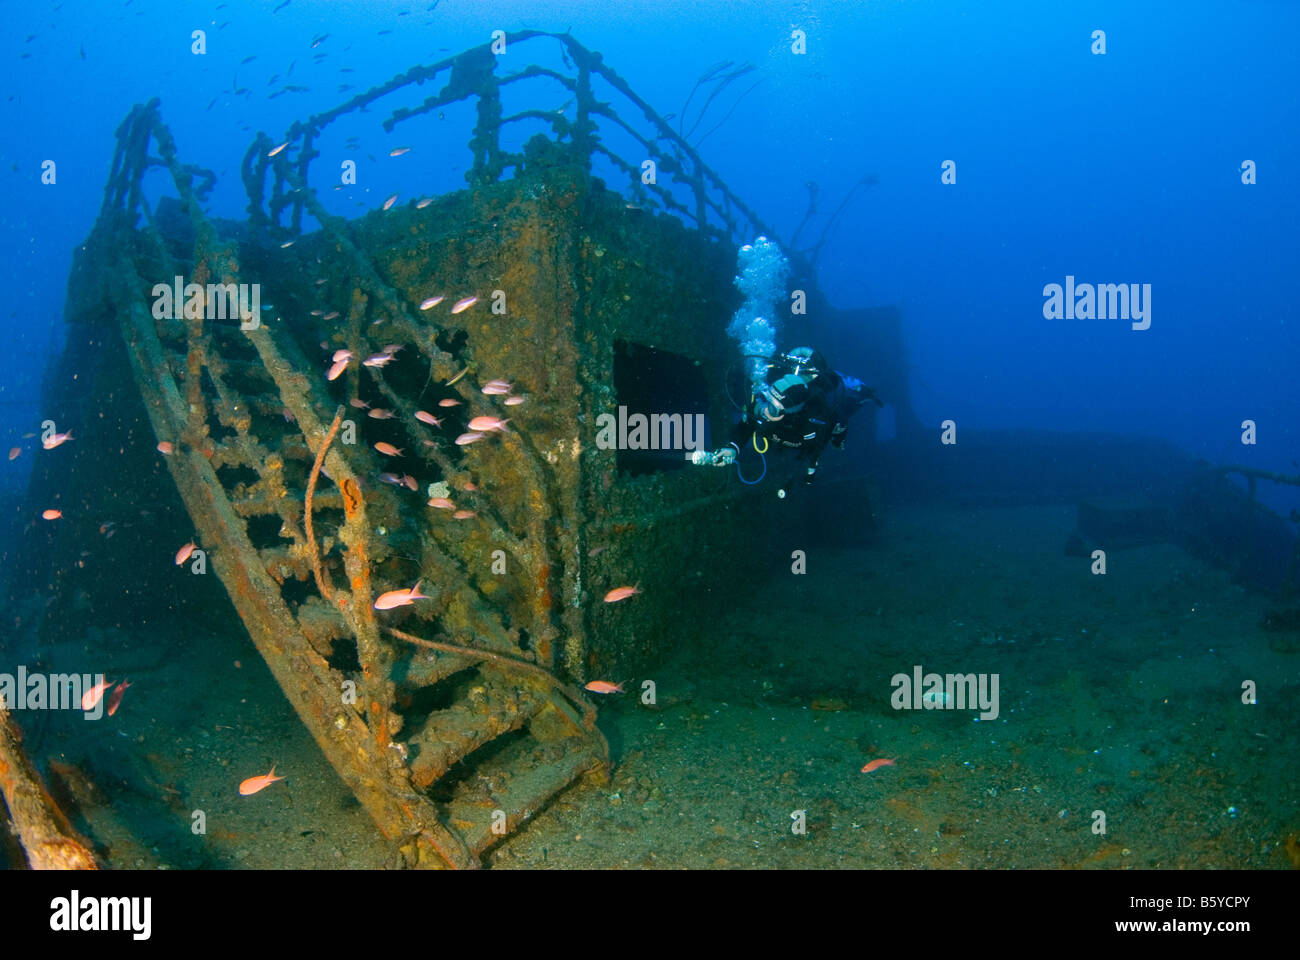 Wreck of haven arenzano genova liguria italy mediterranean and stock photo royalty free - Tech dive arenzano ...